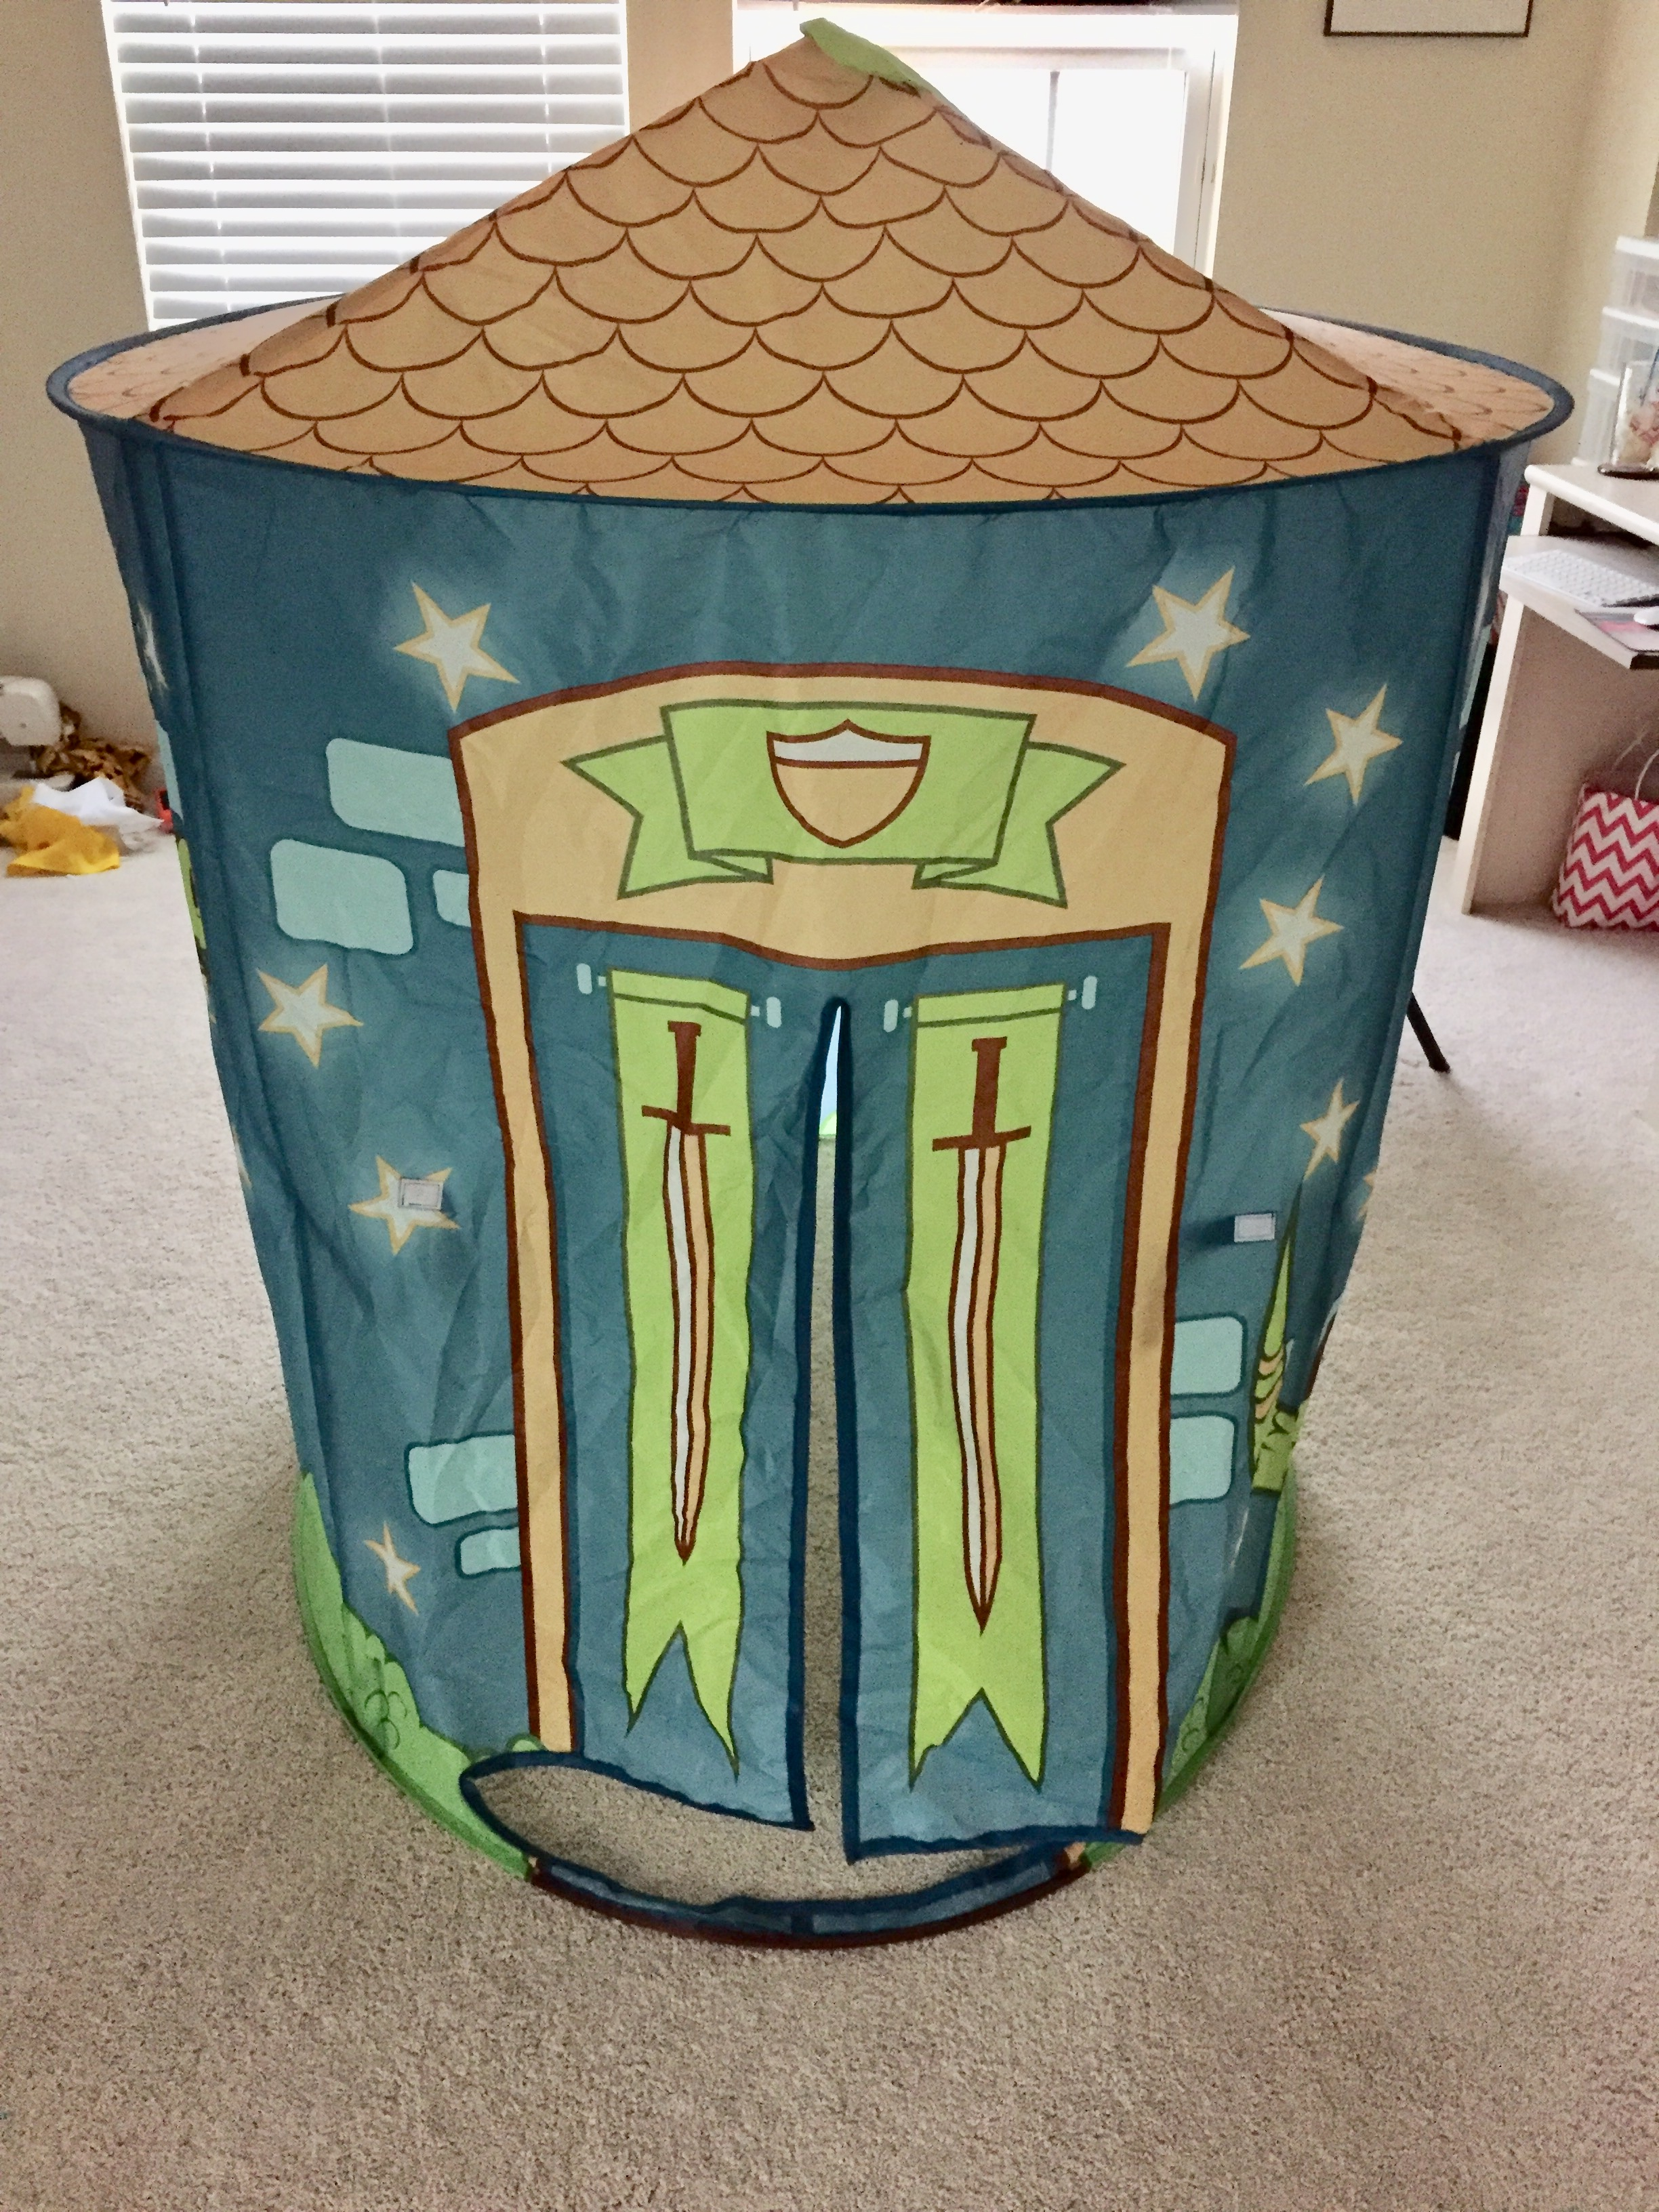 When you receive the play tent you must assemble. It is pretty easy to do yourself but for me it was easier when my husband was able to help. & Twinkle Play Tents Review